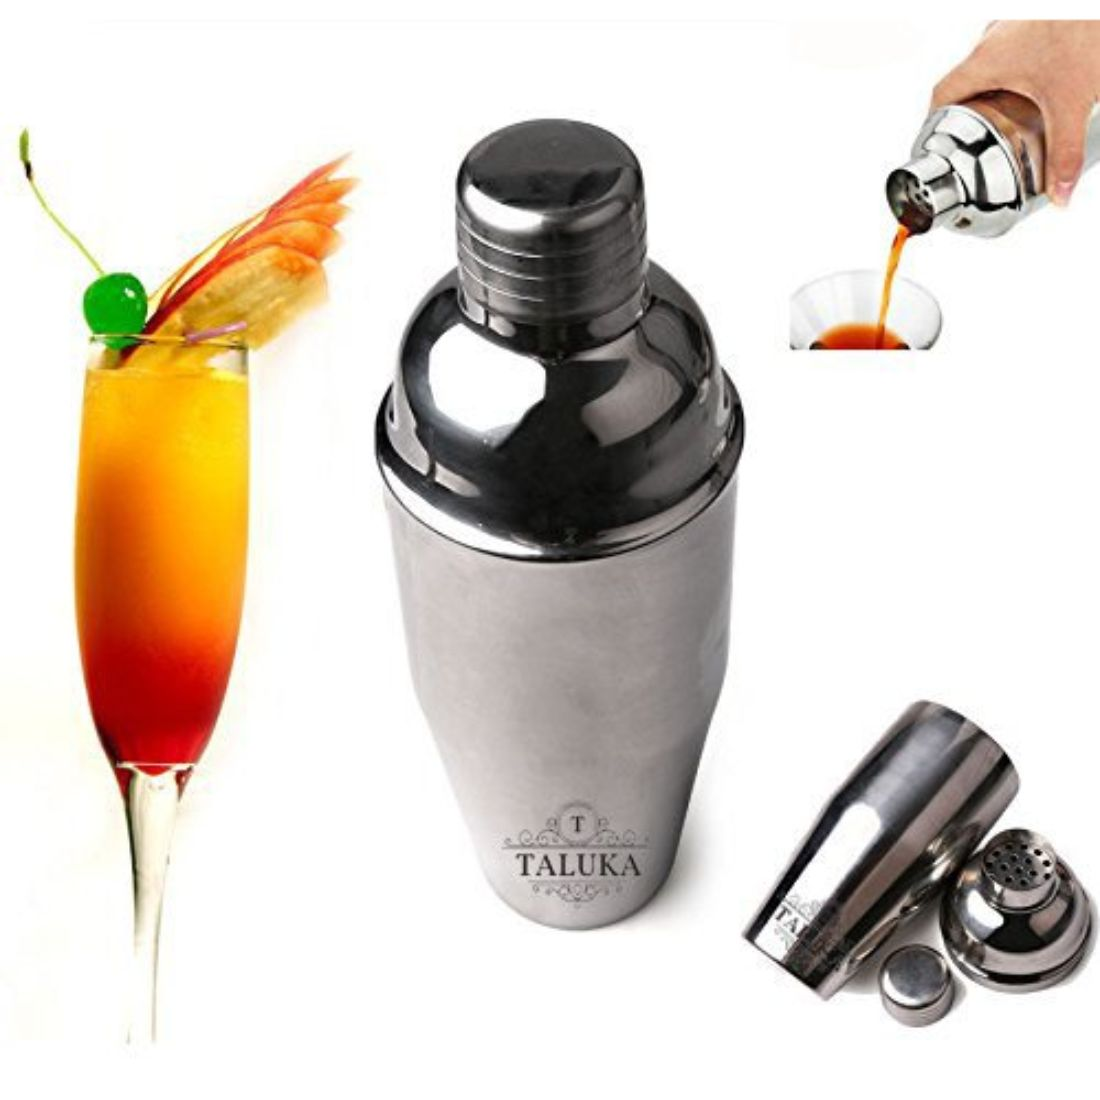 Stainless Steel Mocktail Juice Mixing & Serving Wine Cocktail Wine Shaker